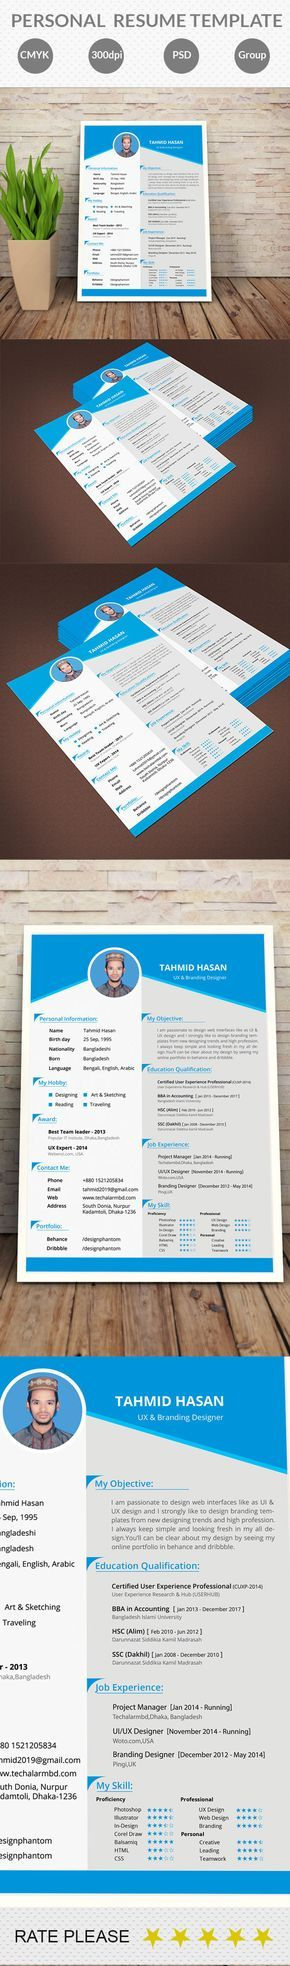 free creative resume templates that stand out%0A Showcase and discover creative work on the world u    s leading online platform  for creative industries  Resume Templates Free